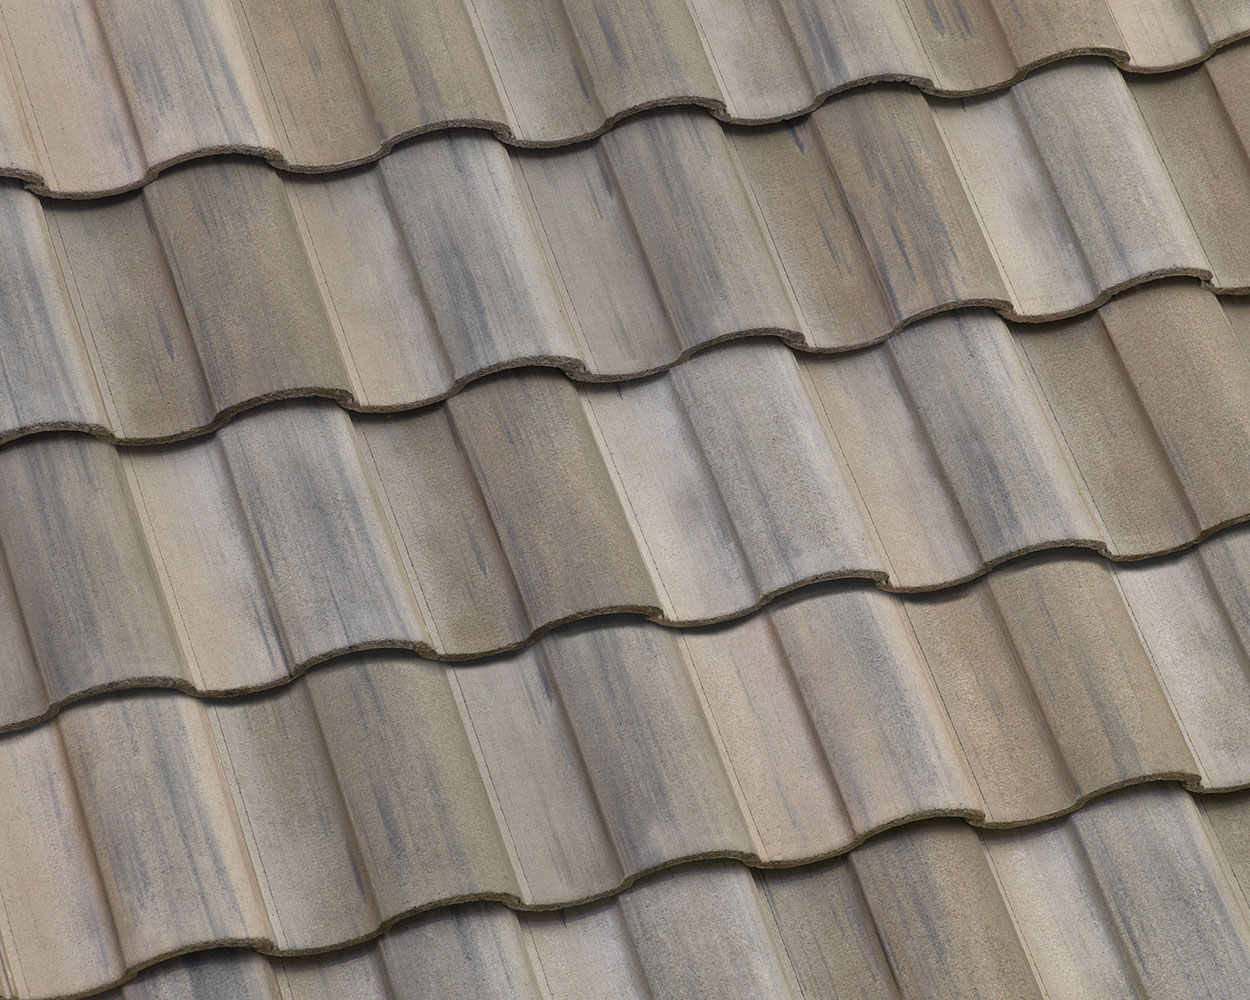 Lakeport blend tile roof color swatch